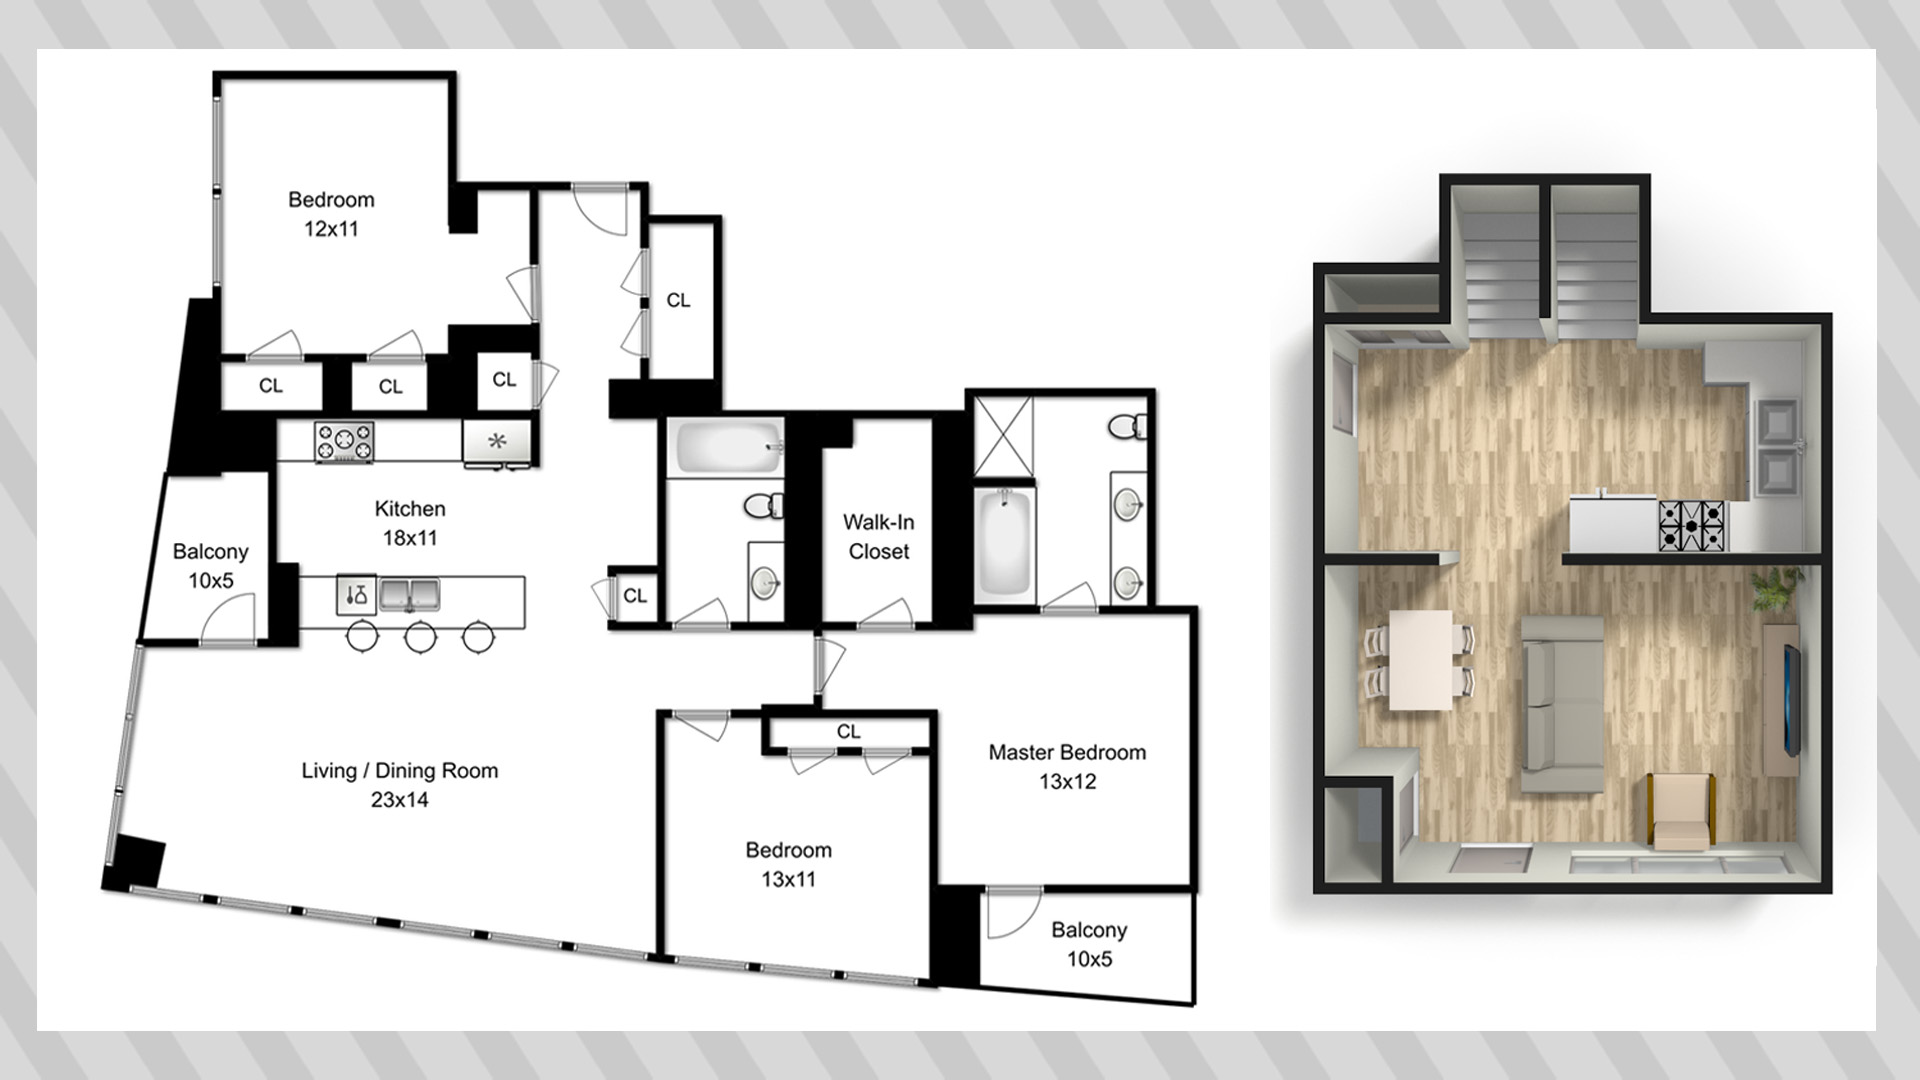 Home floor plan virtual tour westport homes denali floor for 3d virtual tour house plans